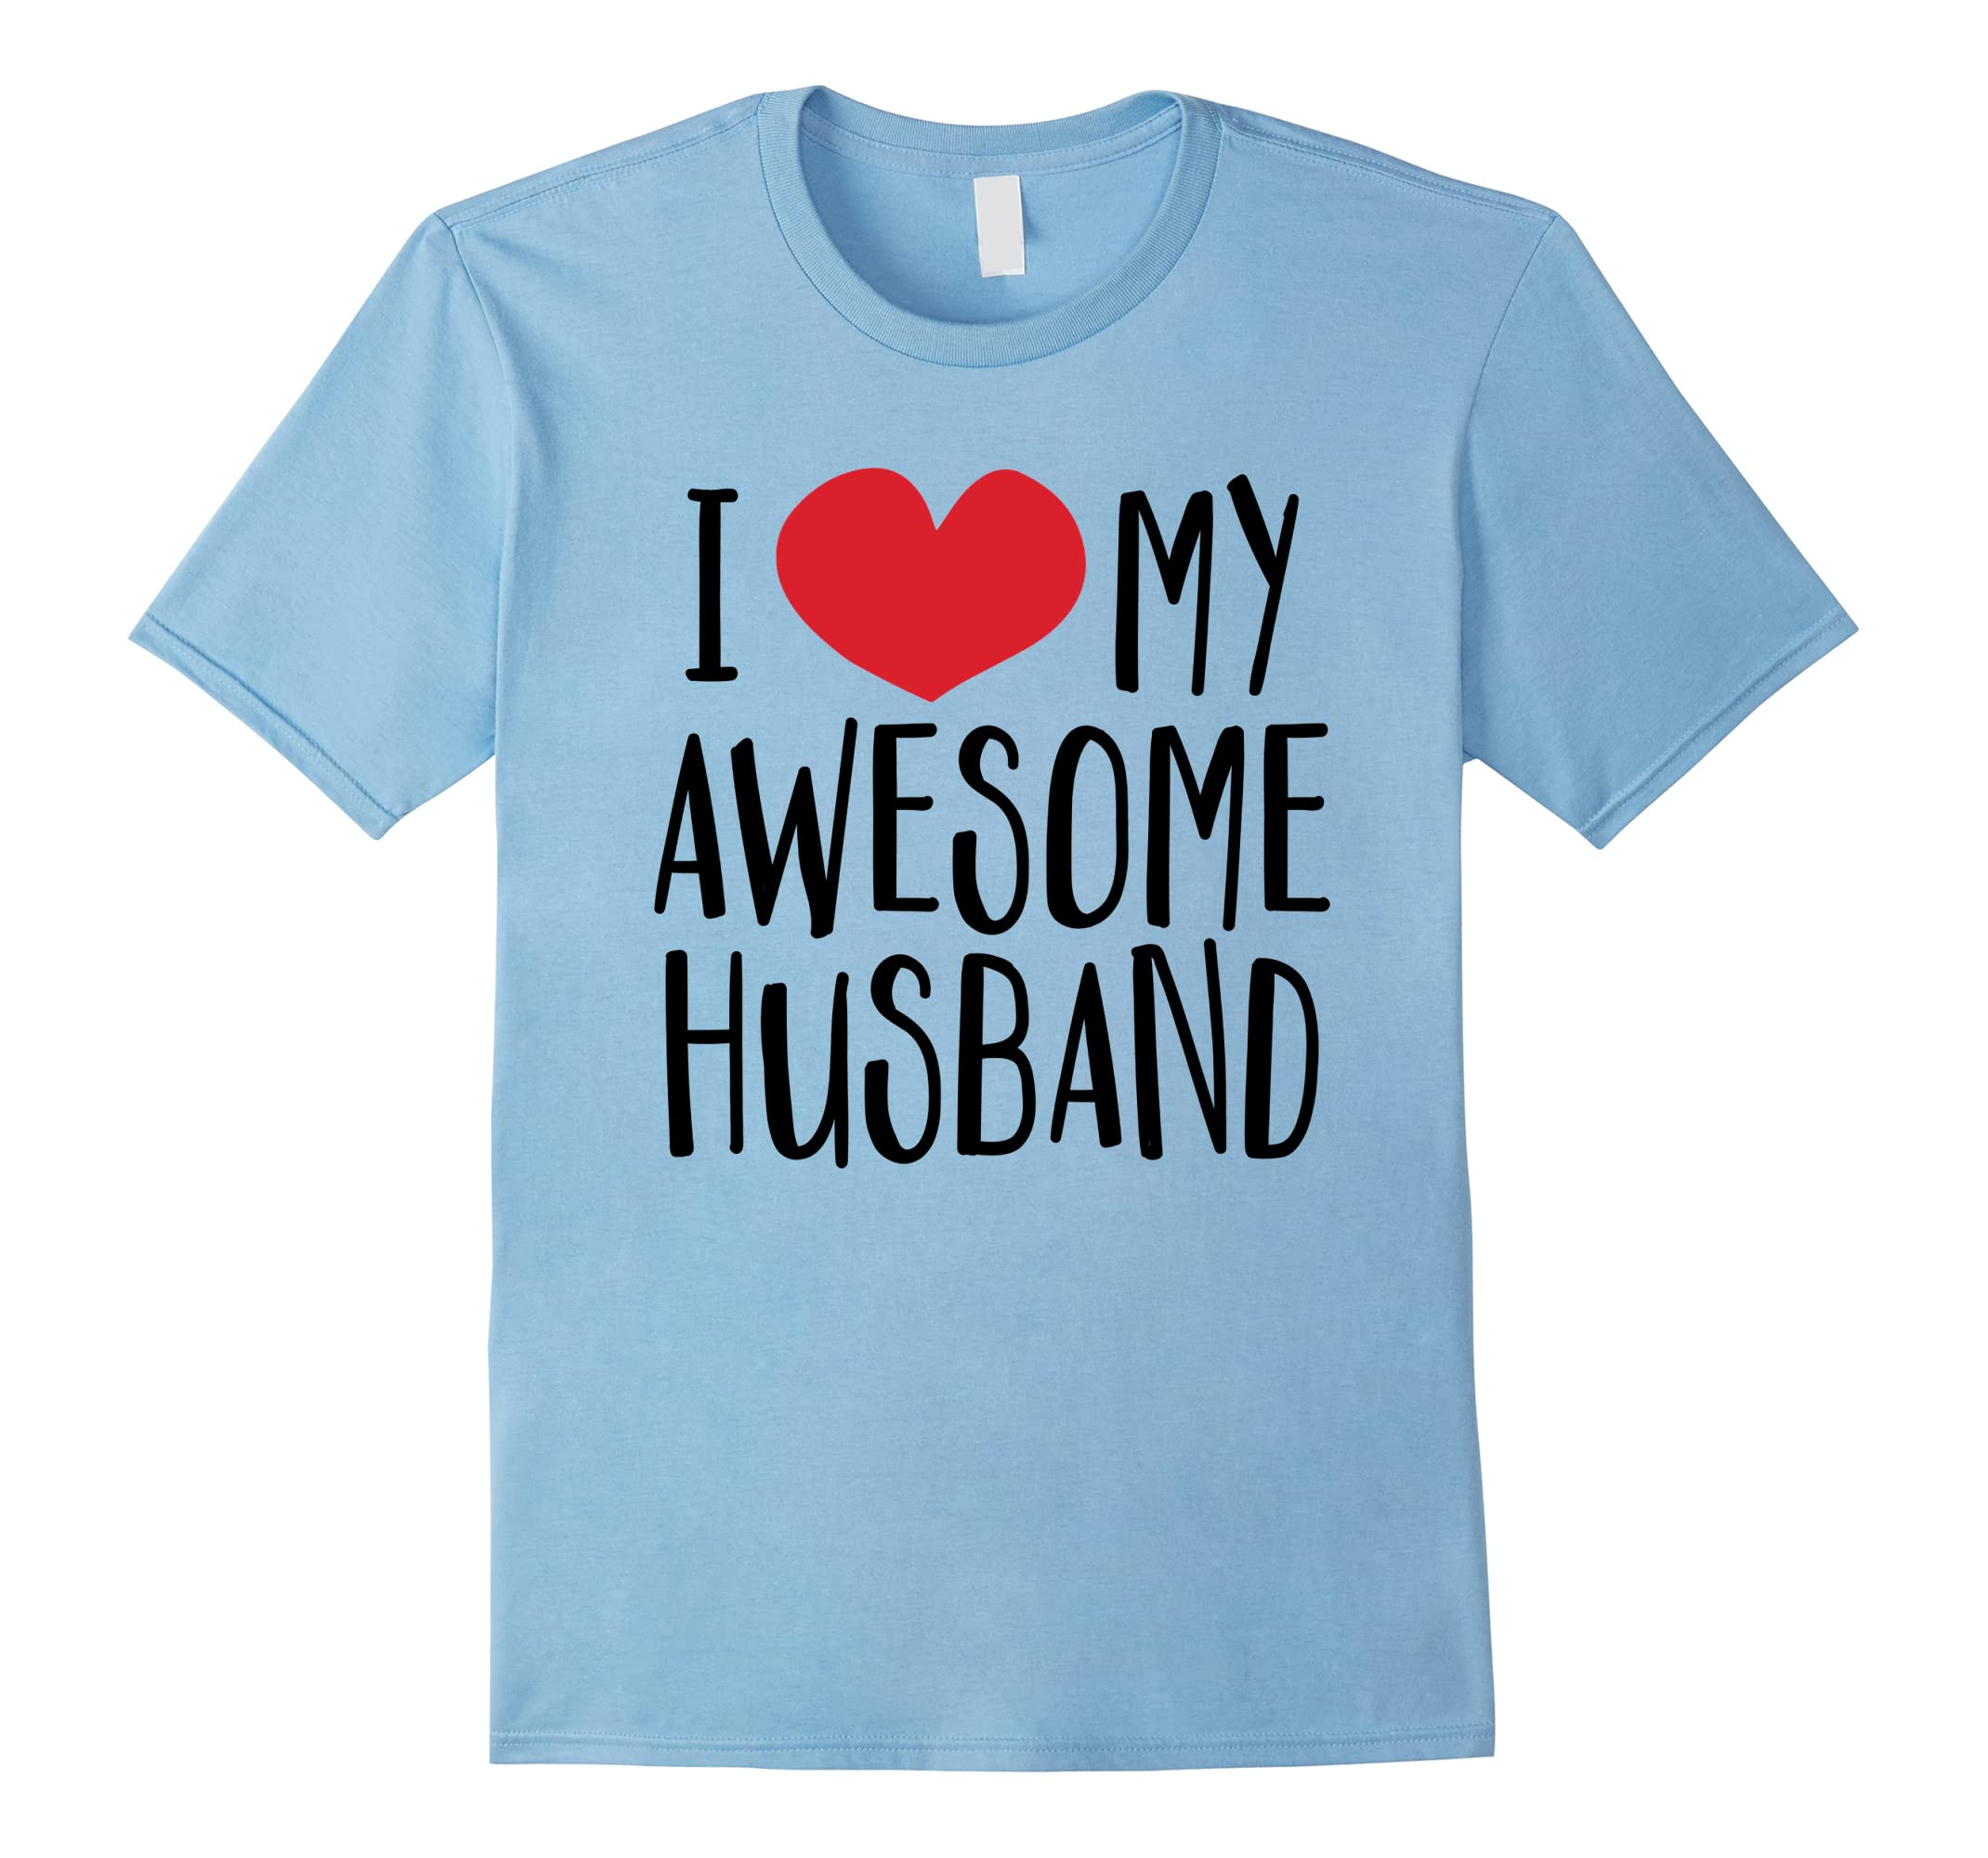 'I Love My Awesome Husband' Great Valentine's Day Gift Shirt-ah my shirt one gift